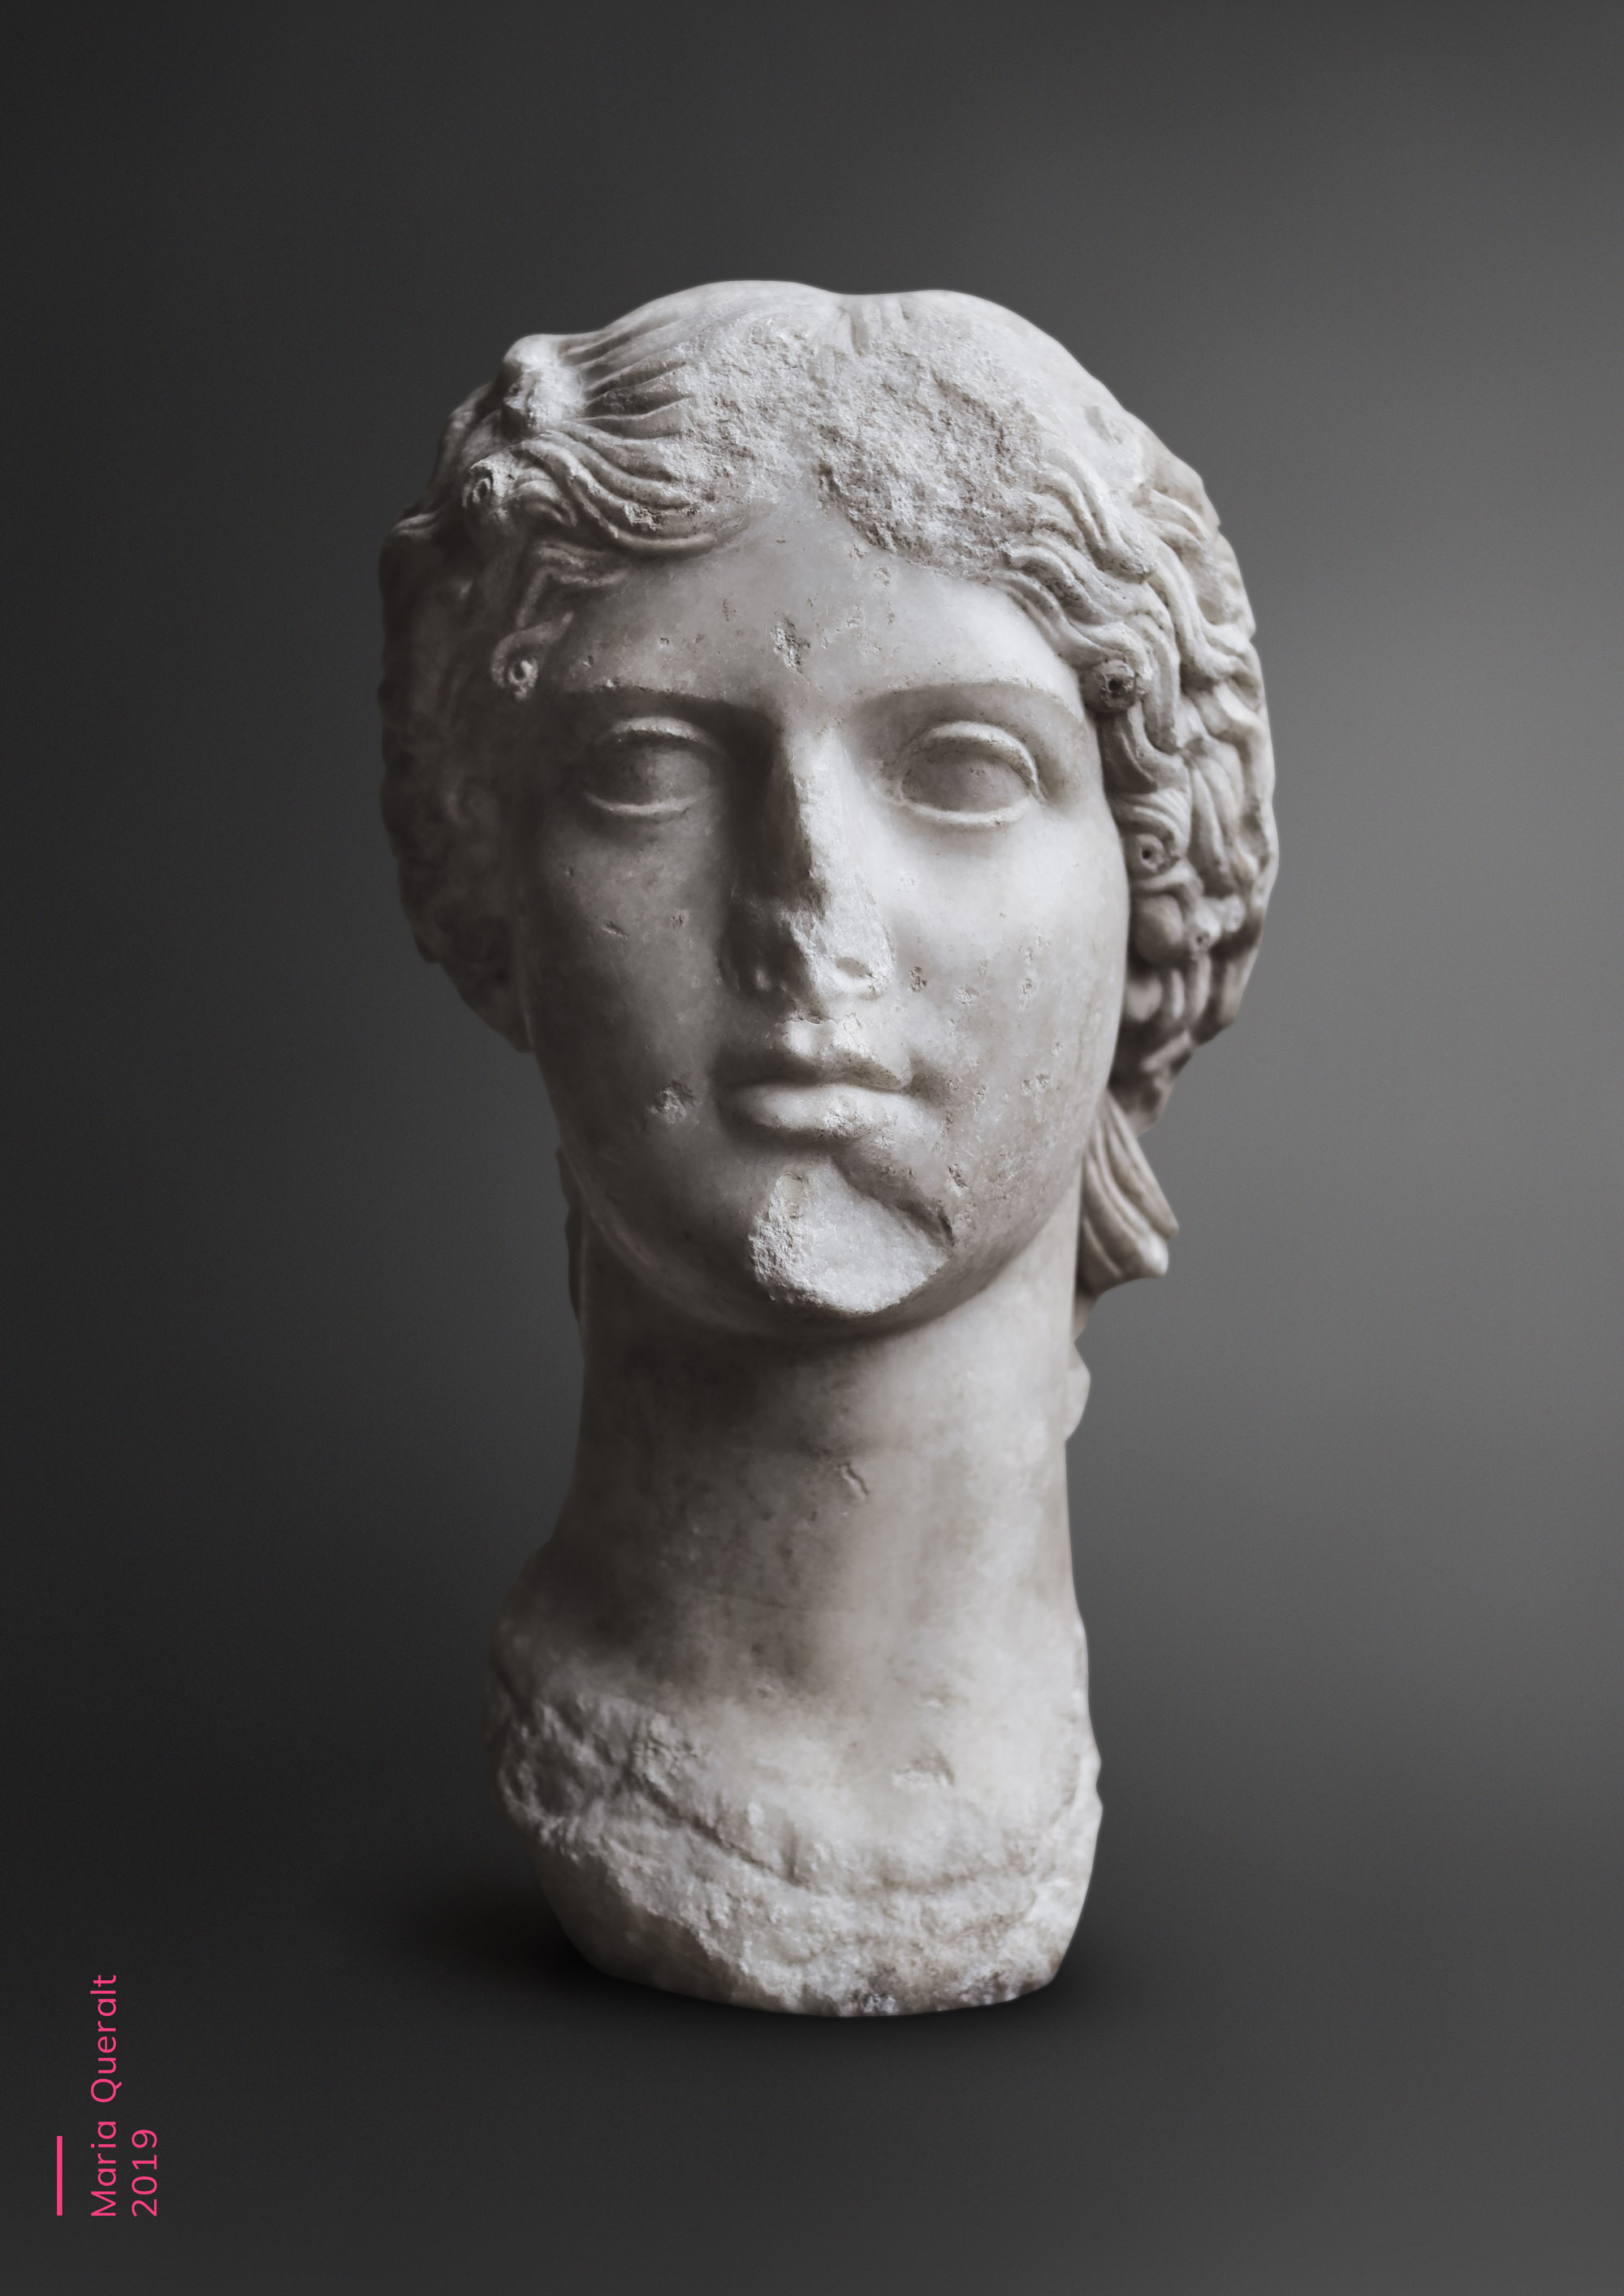 Sculpture of Agrippina the Elder, mother of Roman Emperor Caligula, Louvre Museum, Paris. Part of the Ancient Influencers Photography series by Maria Queralt. Photography and retouche by Maria Queralt